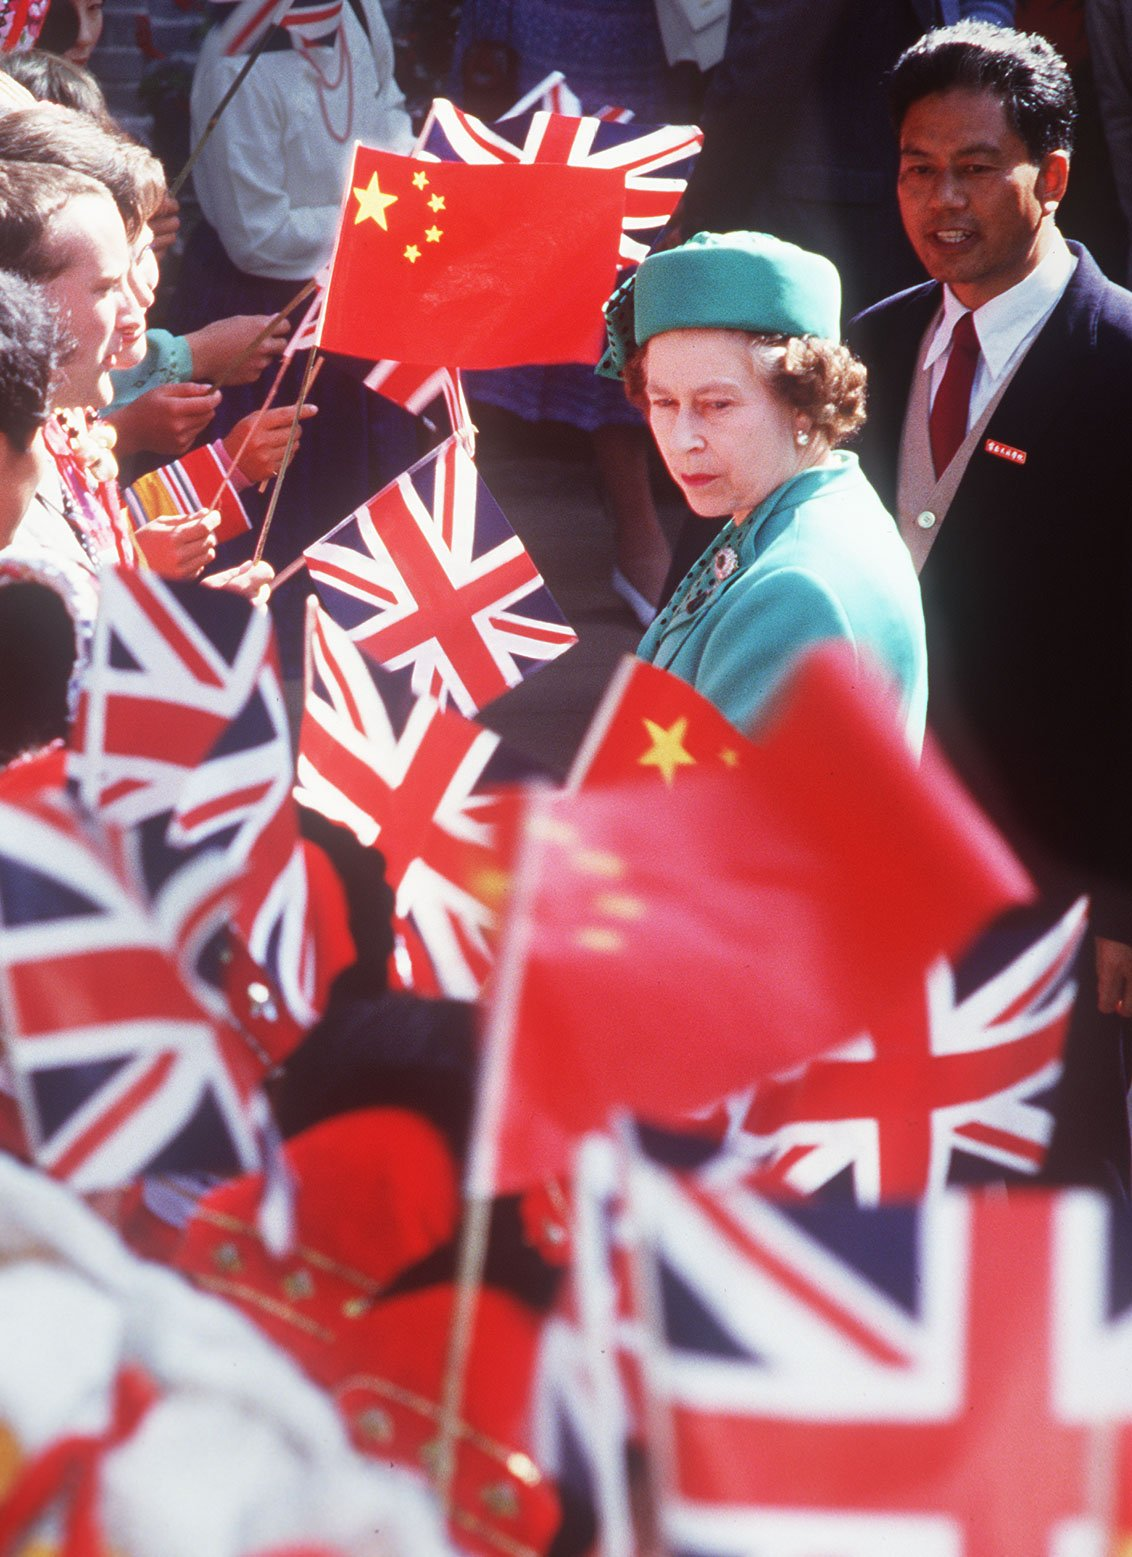 Major Milestones 65 Years Of British Sino Relations As President Xi Old Circuit Board United Kingdom Flag Tshirt 1991